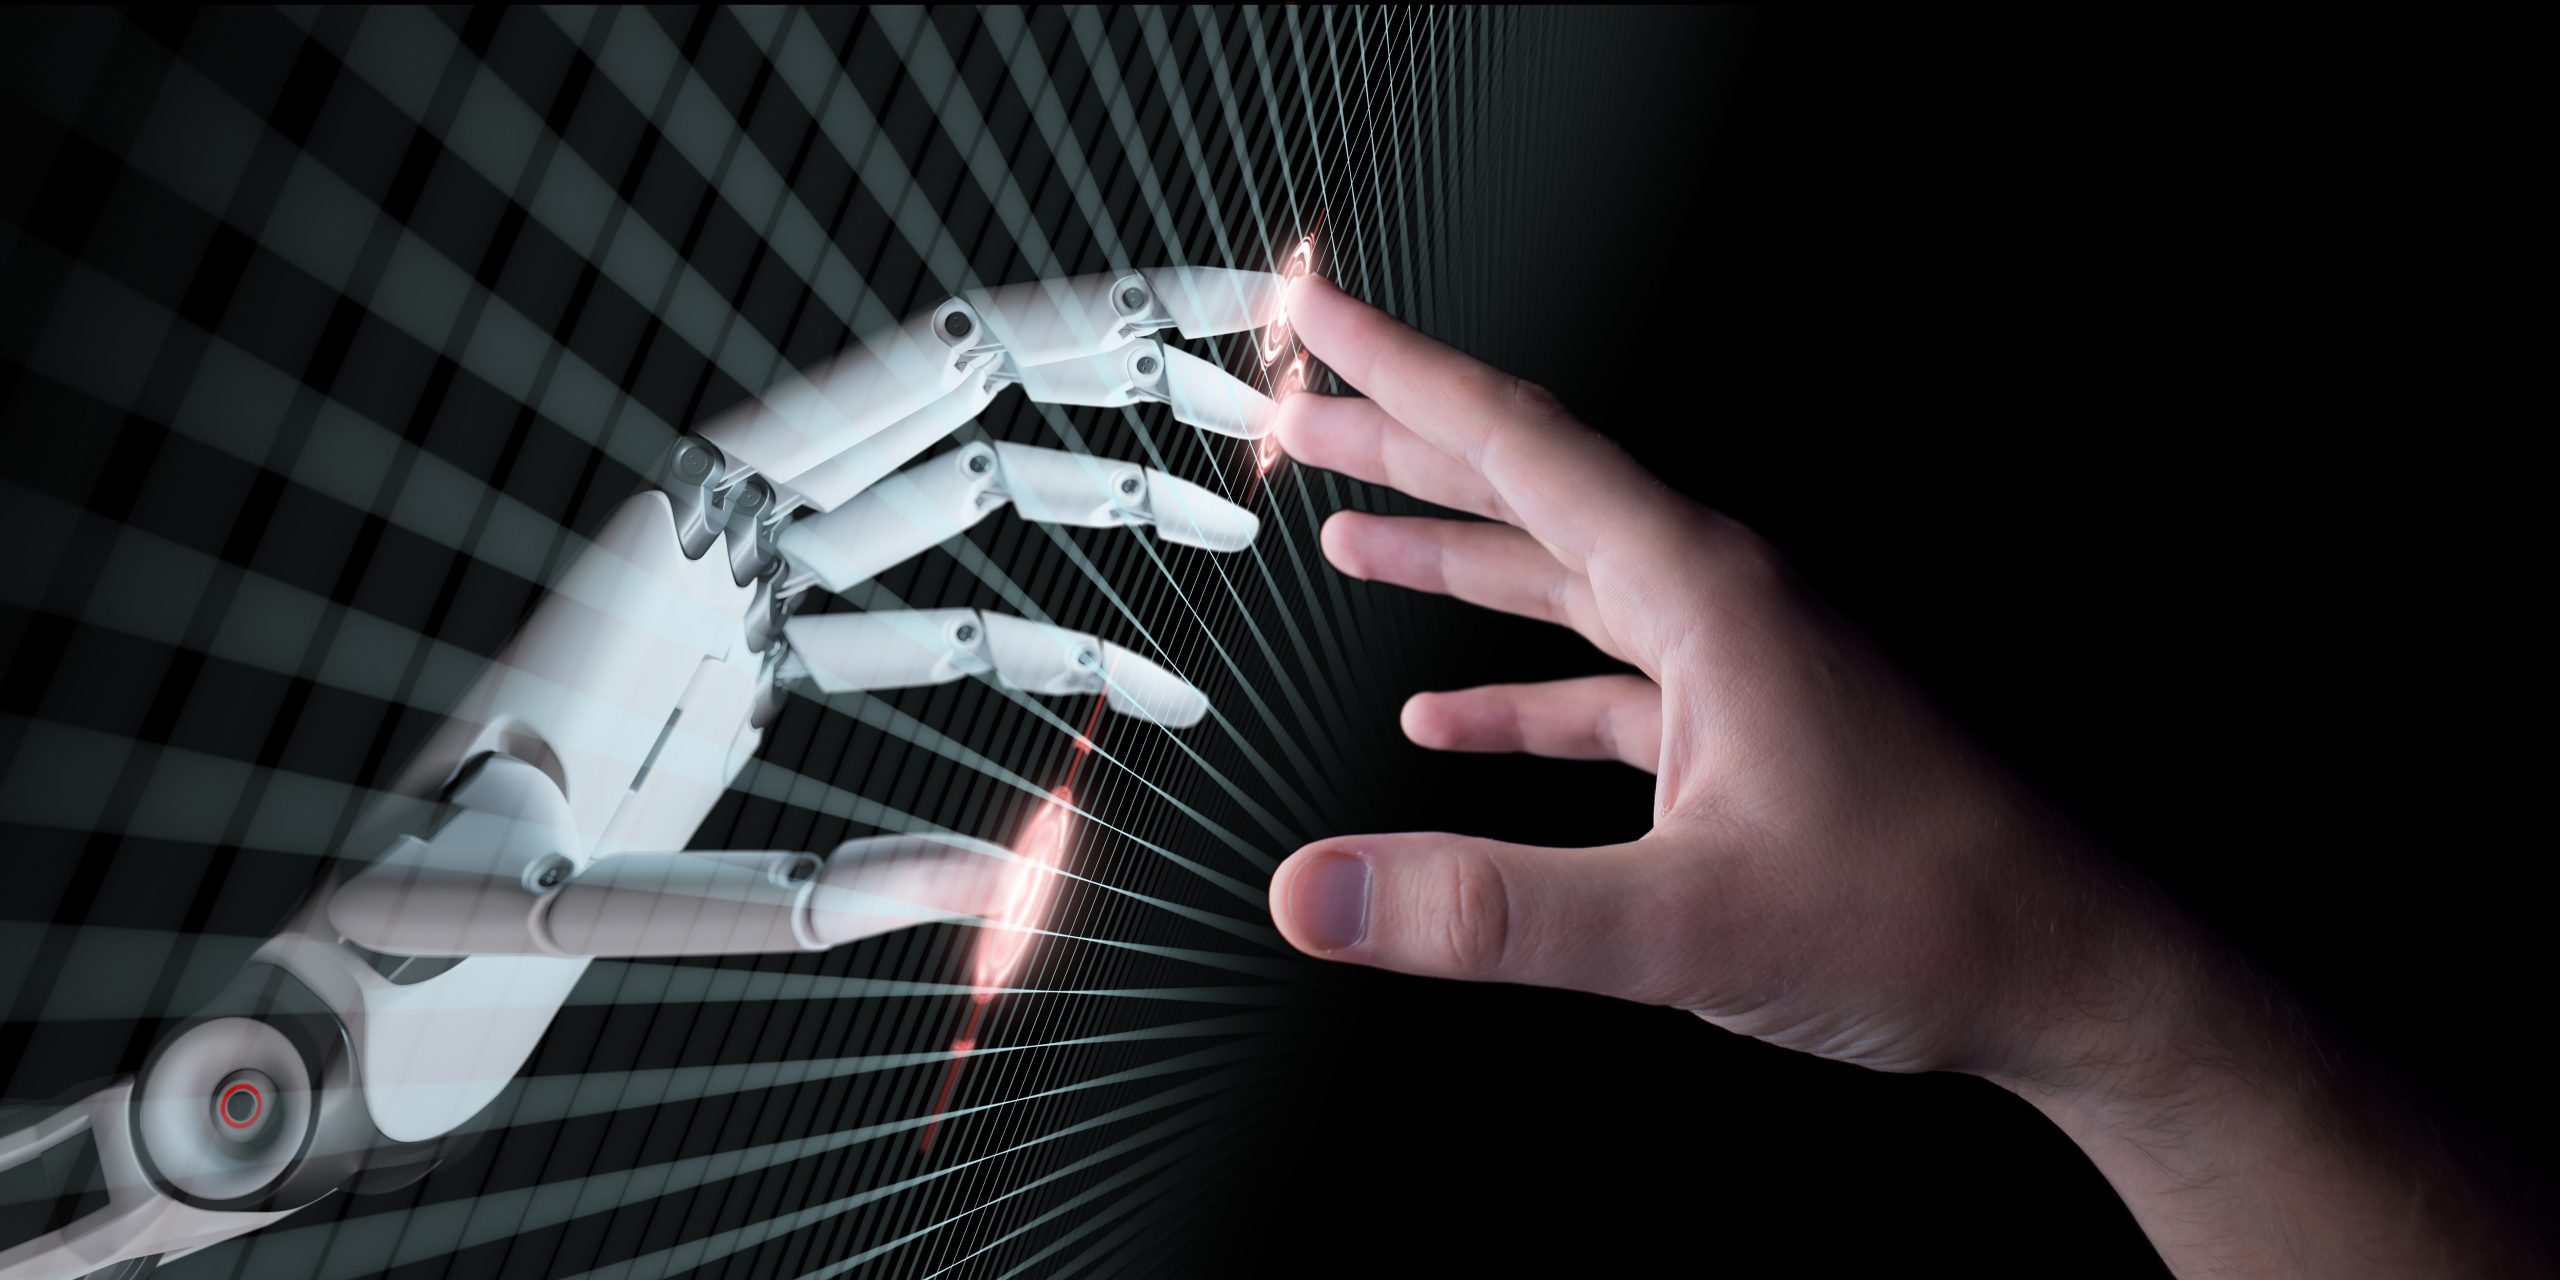 Hands,Of,Robot,And,Human,Touching.,Virtual,Reality,Or,Artificial